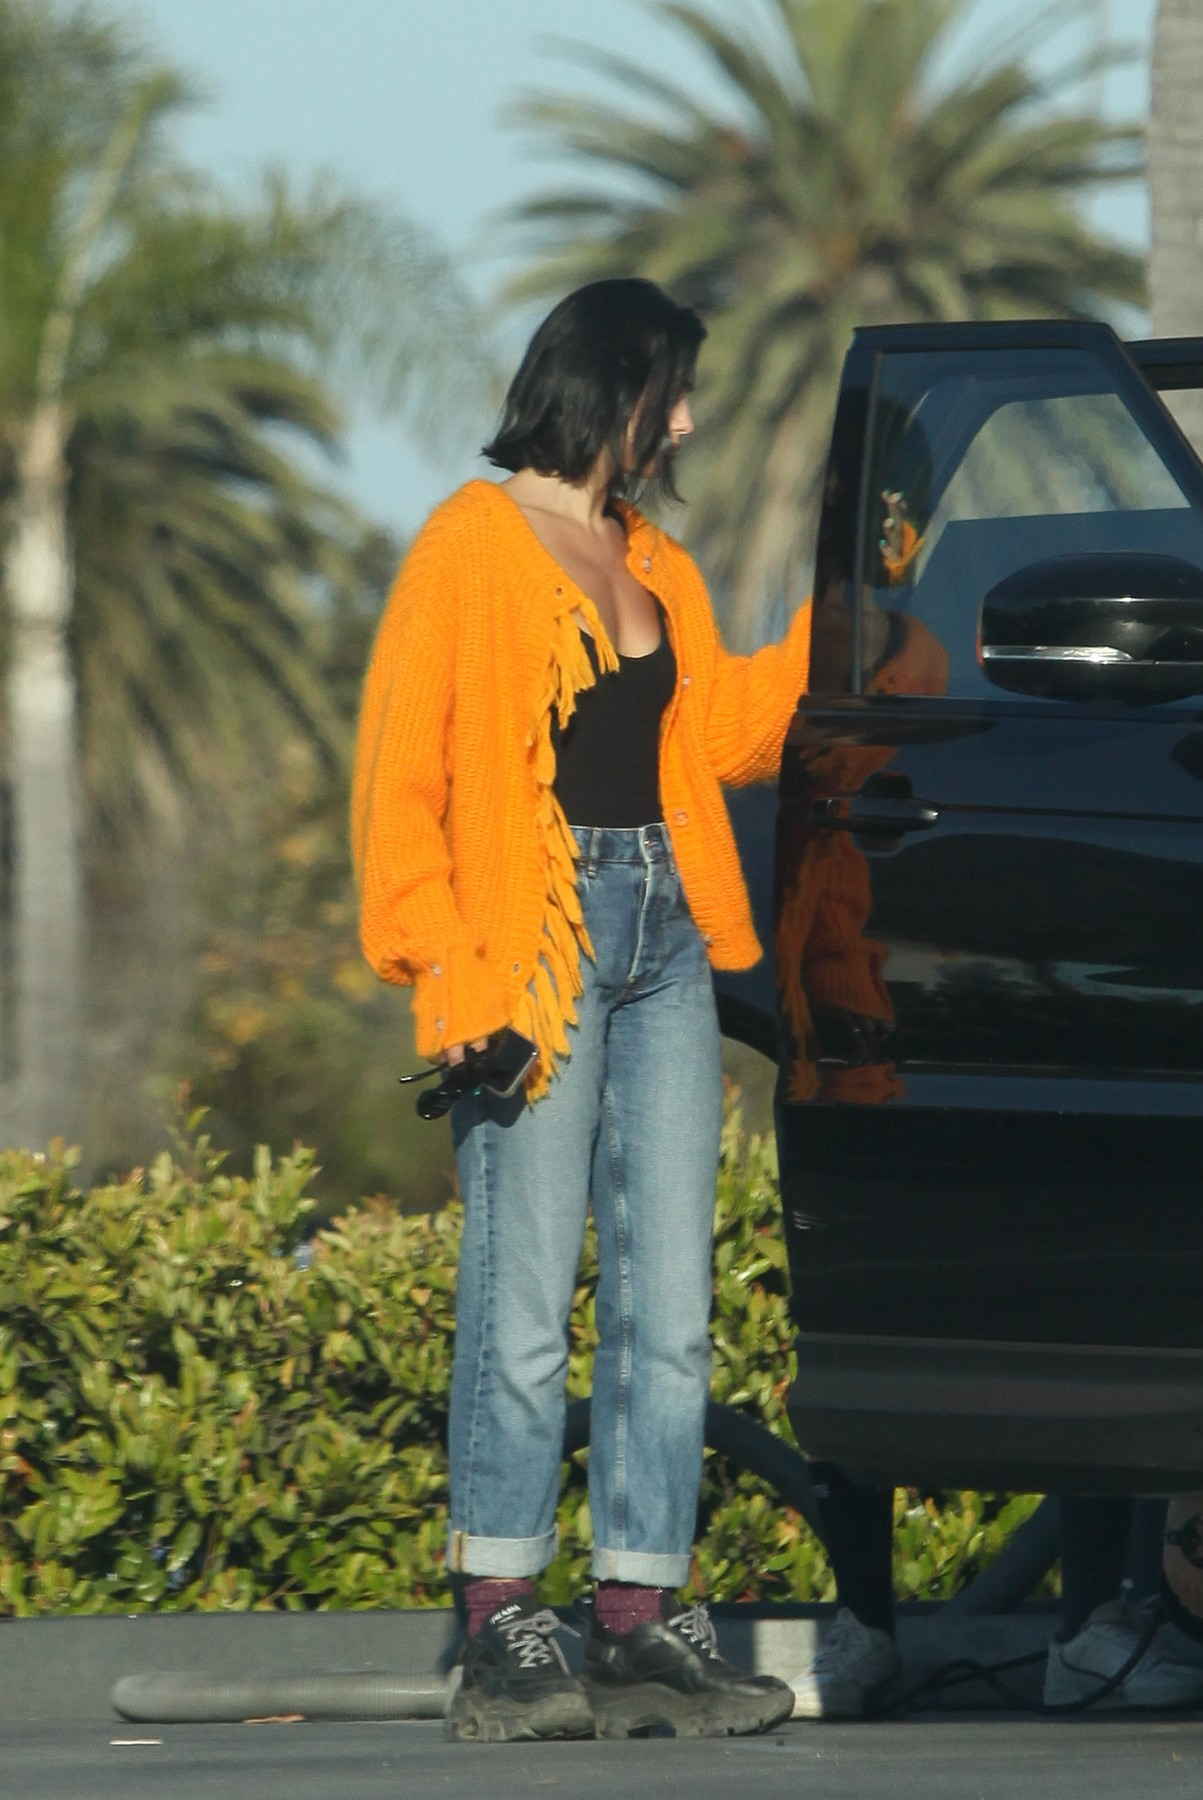 EXCLUSIVE: Dua Lipa and Anwar Hadid pulled over to a nearby gas station to put air in a flat tire ahead of the MTV VMA's. Dua supervised while her friend did the work and Anwar waited in the car. Dua was wearing a orange cardigan with a black tank top, folded boyfriend jeans and Prada Block Sneakers. 25 Aug 2019, Image: 467277379, License: Rights-managed, Restrictions: World Rights, Model Release: no, Credit line: MEGA / Mega Agency / Profimedia